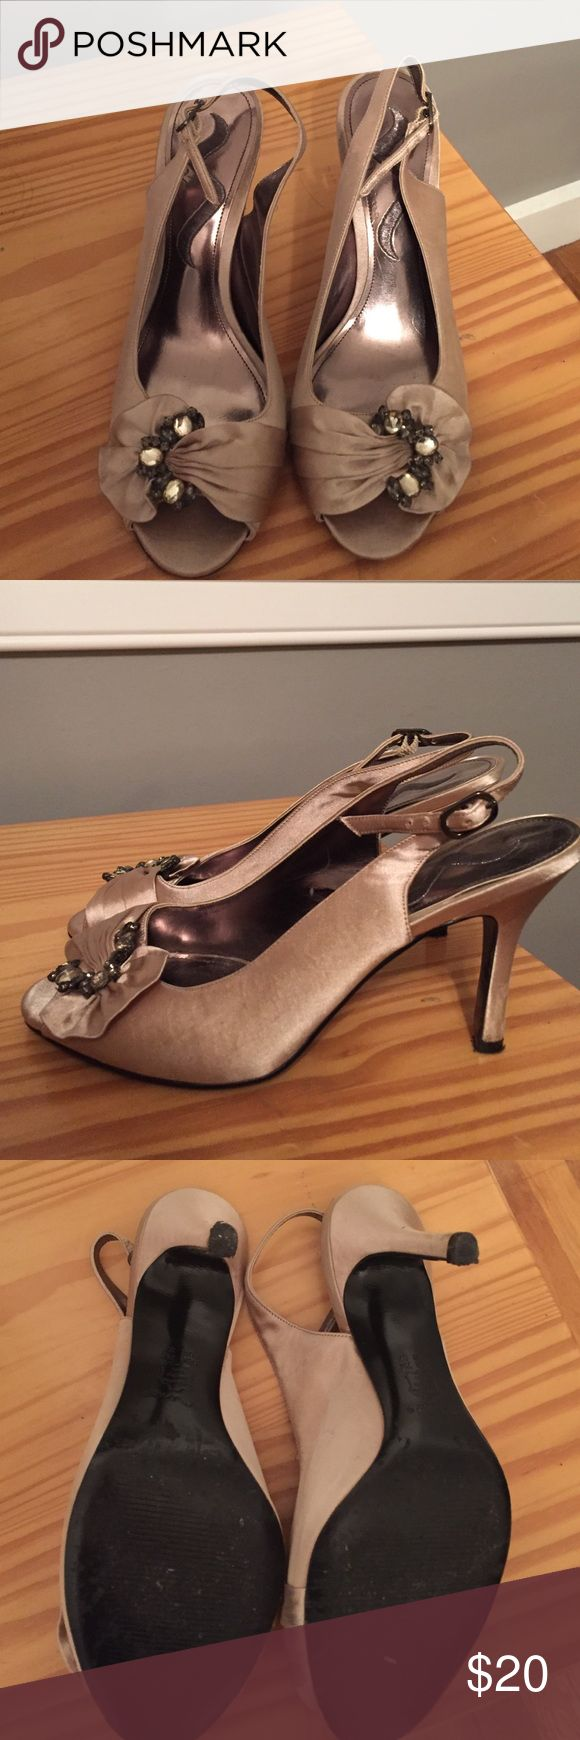 Nina champagne heels size 7 Like new Nina champagne heels size 7. Only worn once in a wedding. Beautiful detail with crystals on toe Nina Shoes Heels